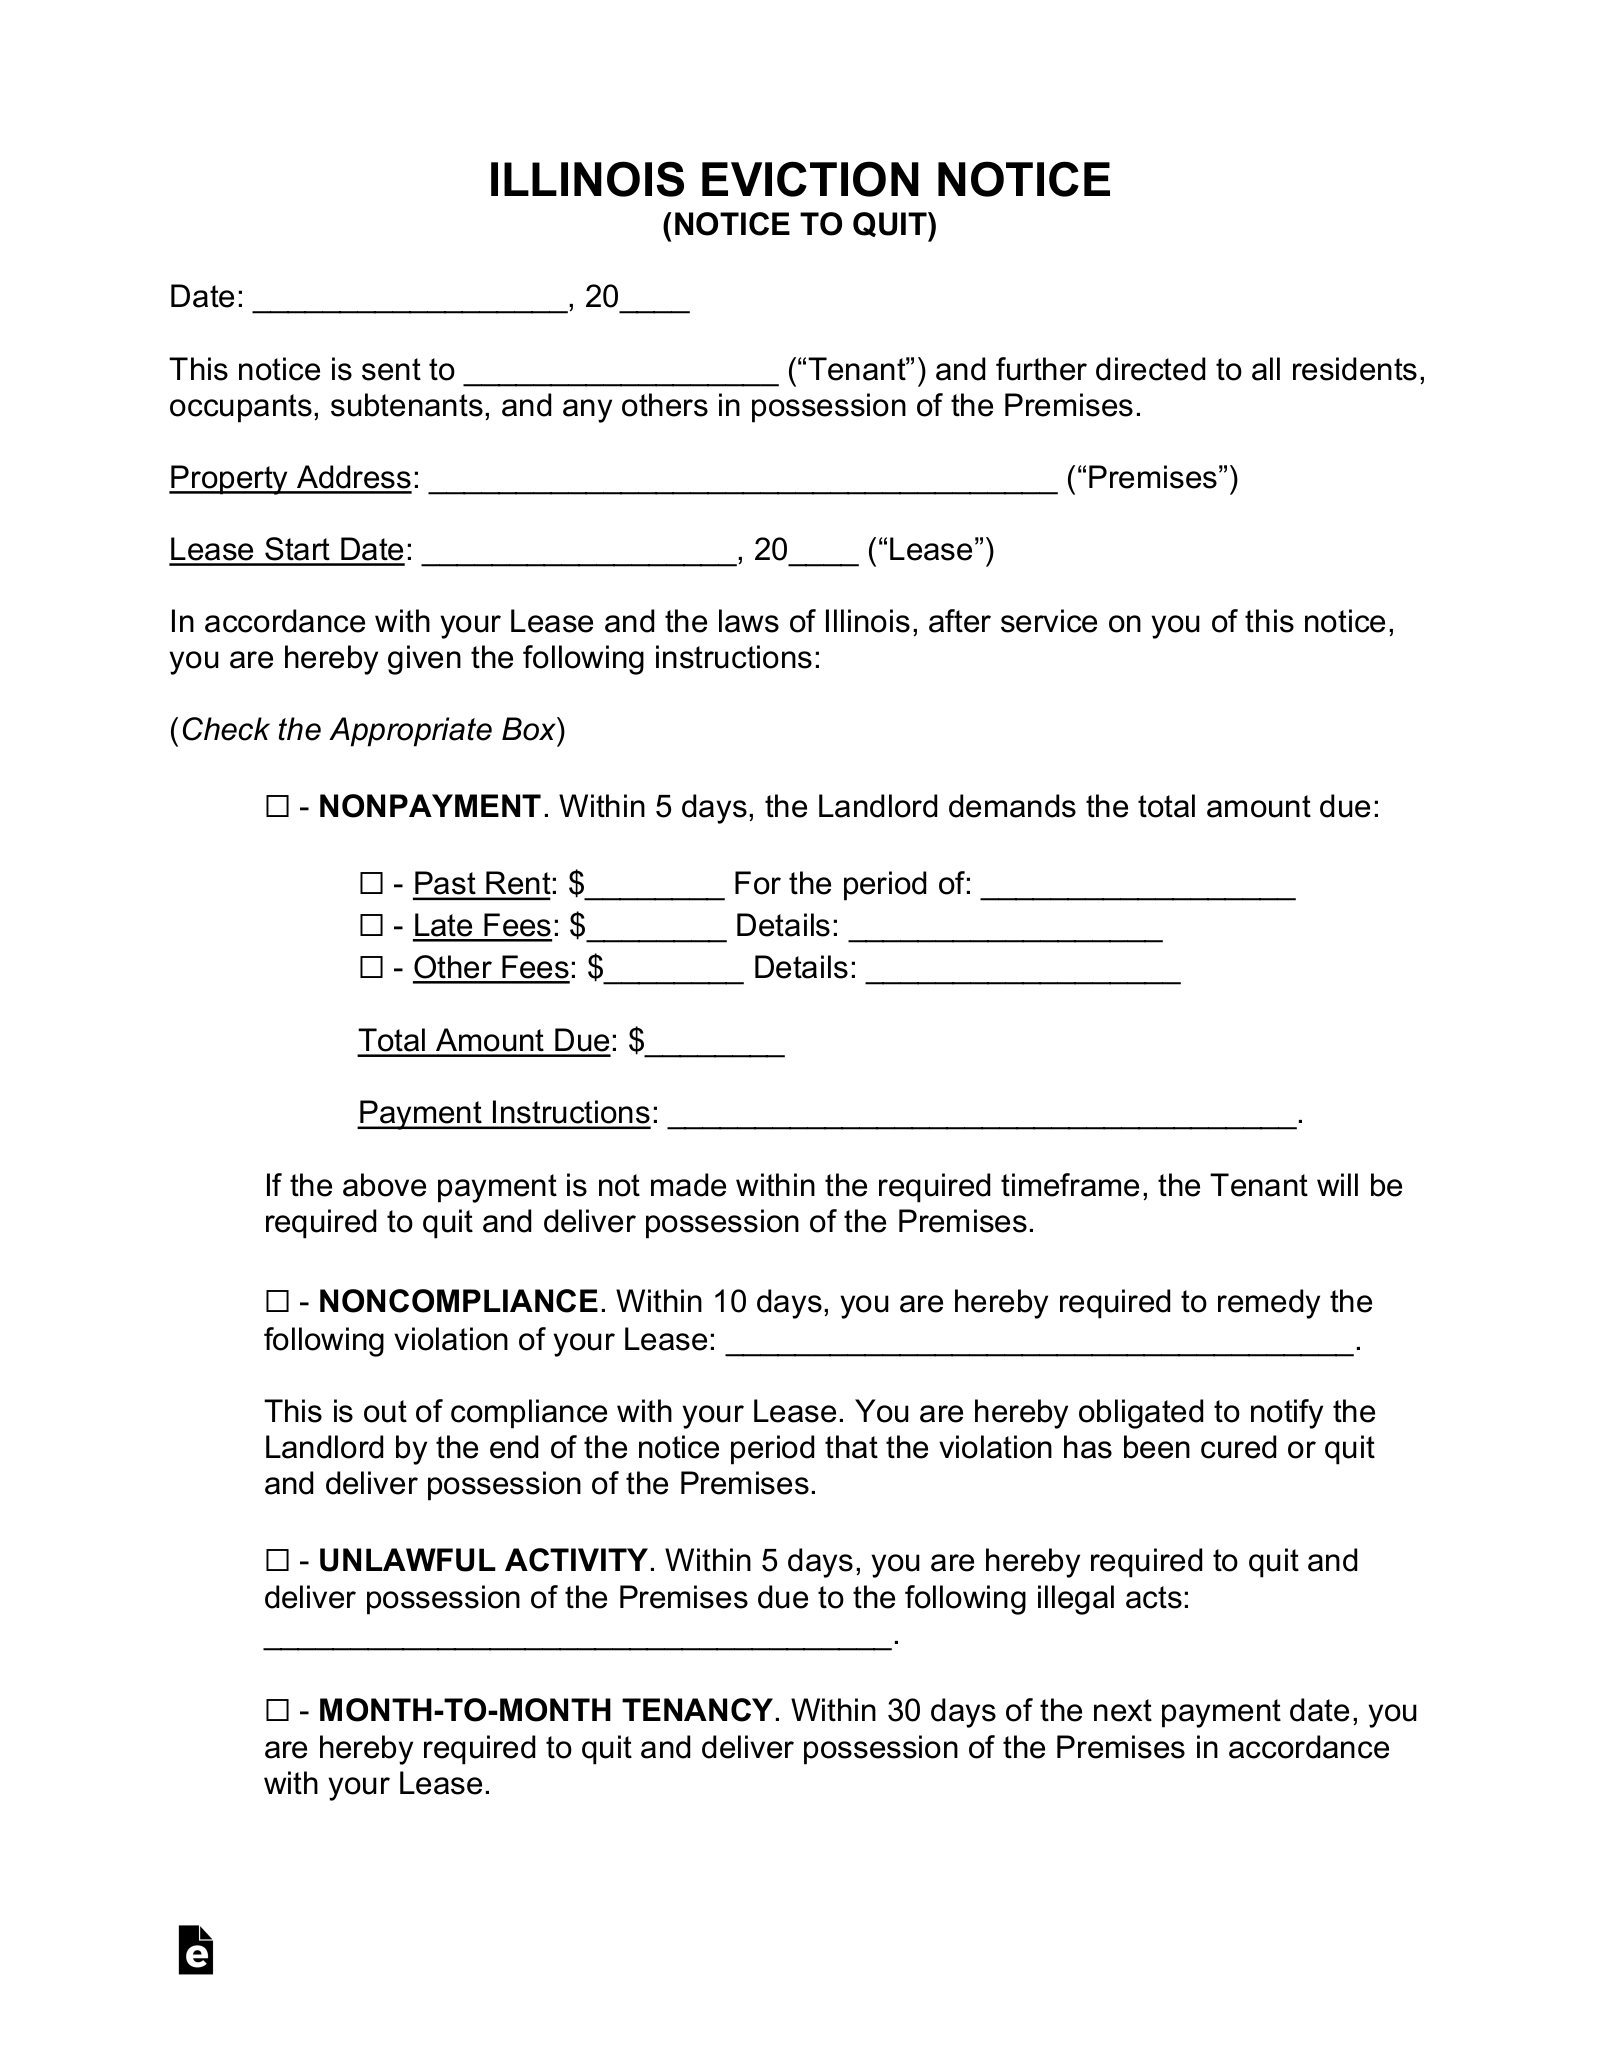 Free Illinois Eviction Notice Forms | Process and Laws - PDF